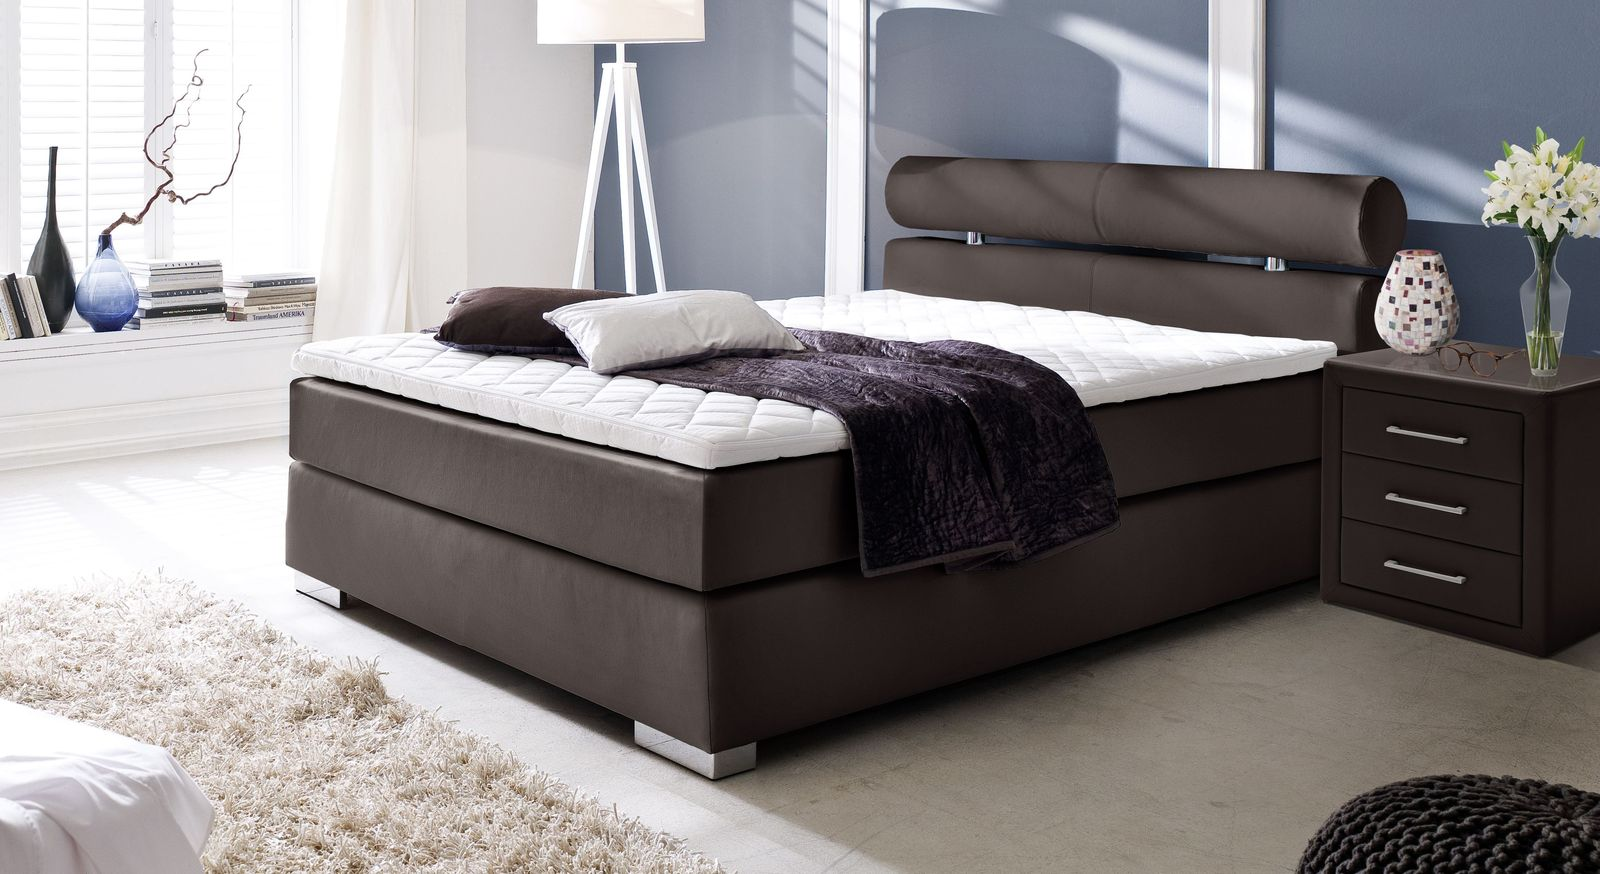 boxspringbett aus kunstleder in wei mit nackenrolle rimori. Black Bedroom Furniture Sets. Home Design Ideas